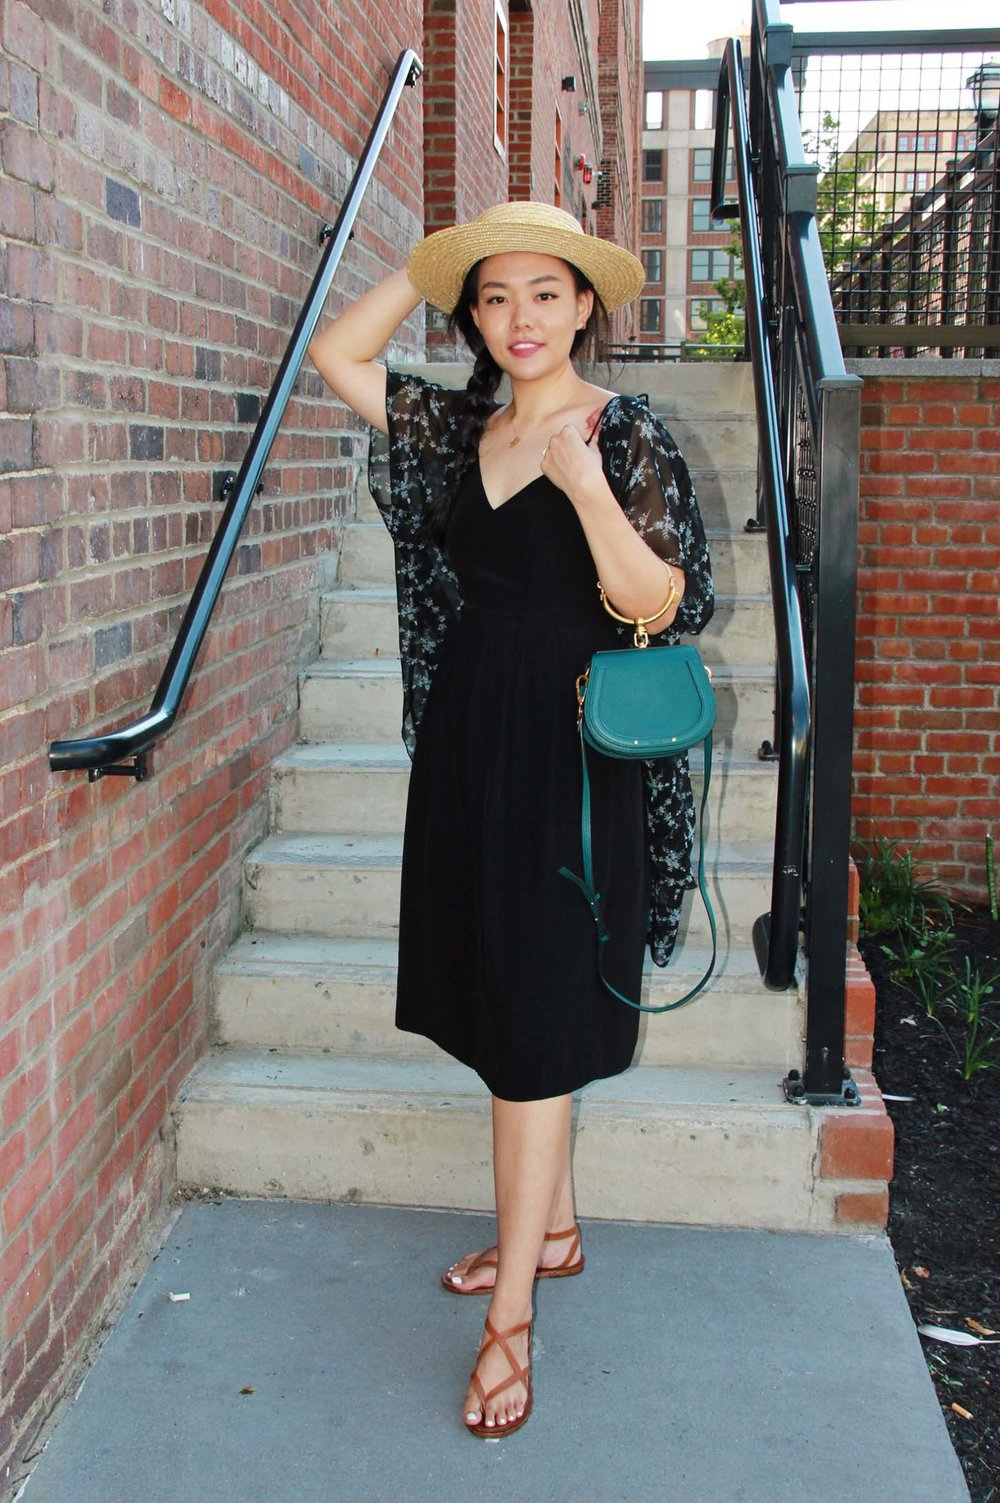 how to make a black dress stand out, accessories for black dress